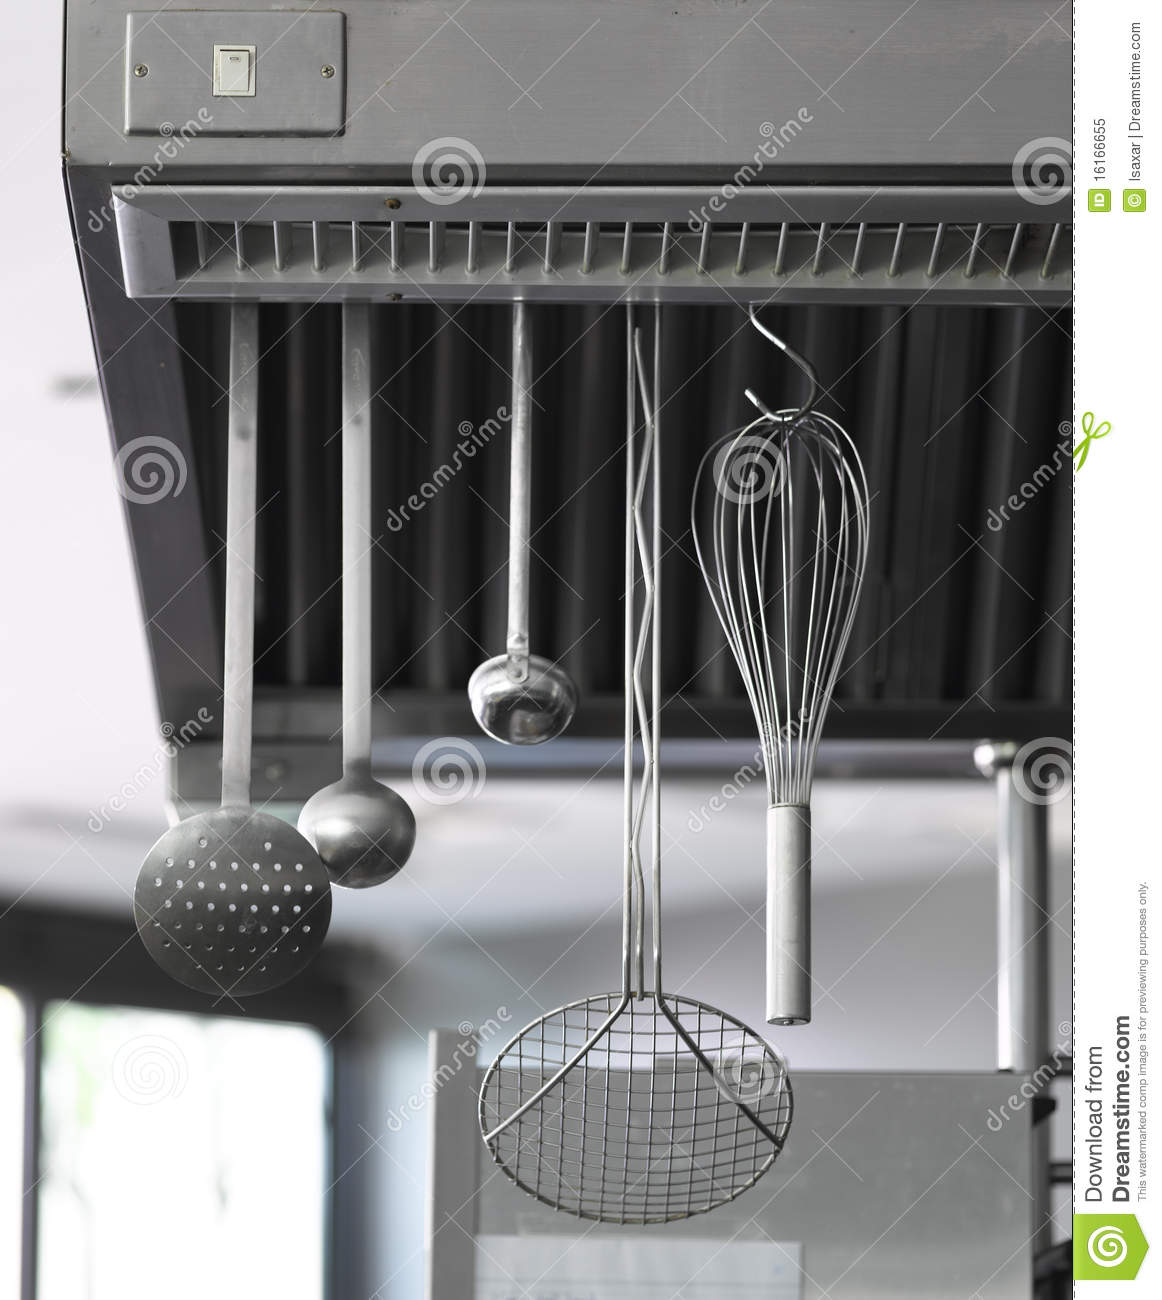 Restaurant Kitchen Equipment Royalty Free Stock Photo - Image